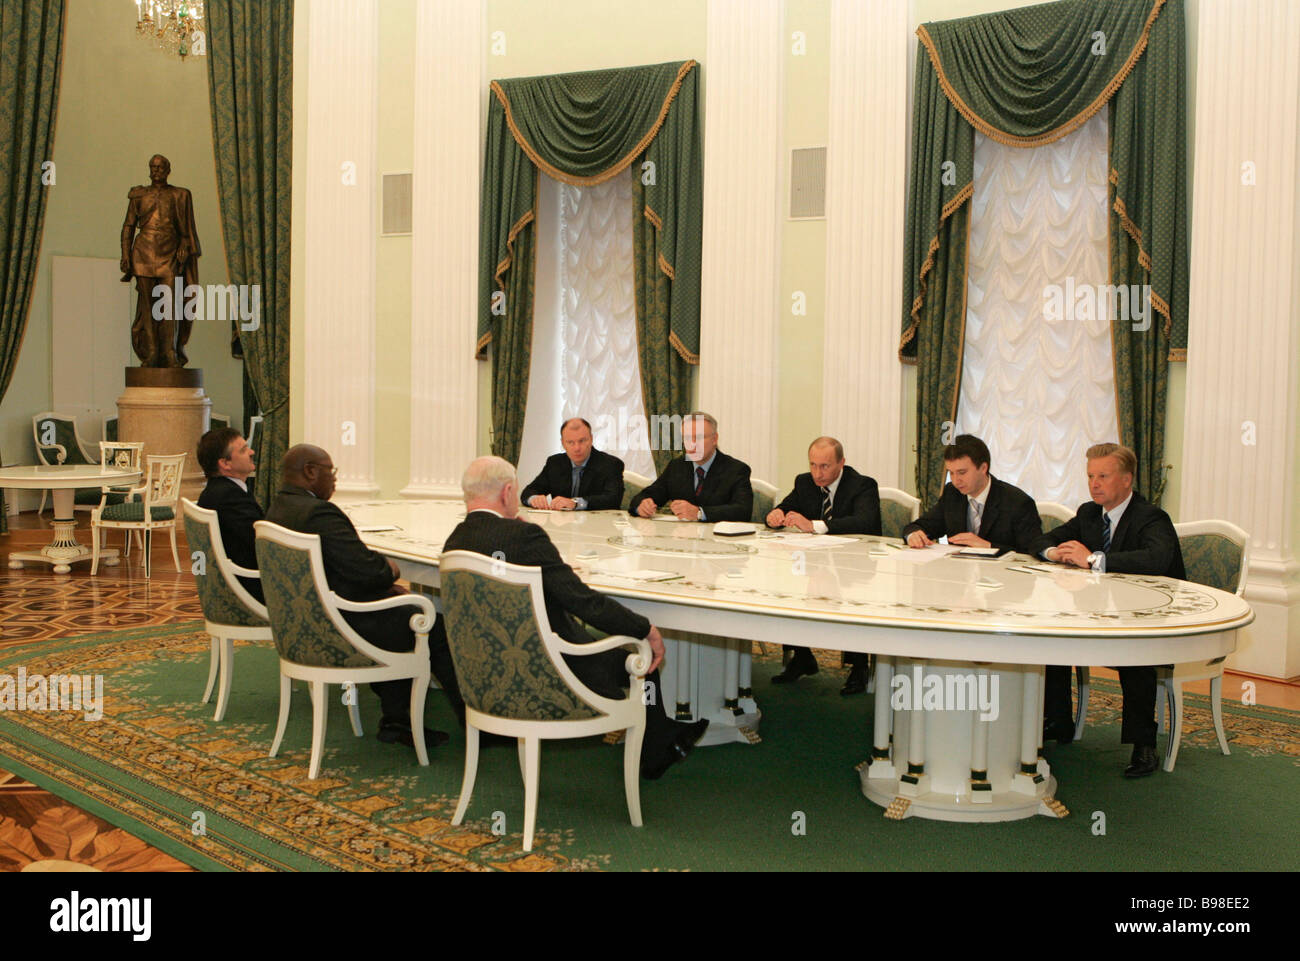 Russian President Vladimir Putin meeting with members of the International Olympic Committee in the Kremlin - Stock Image